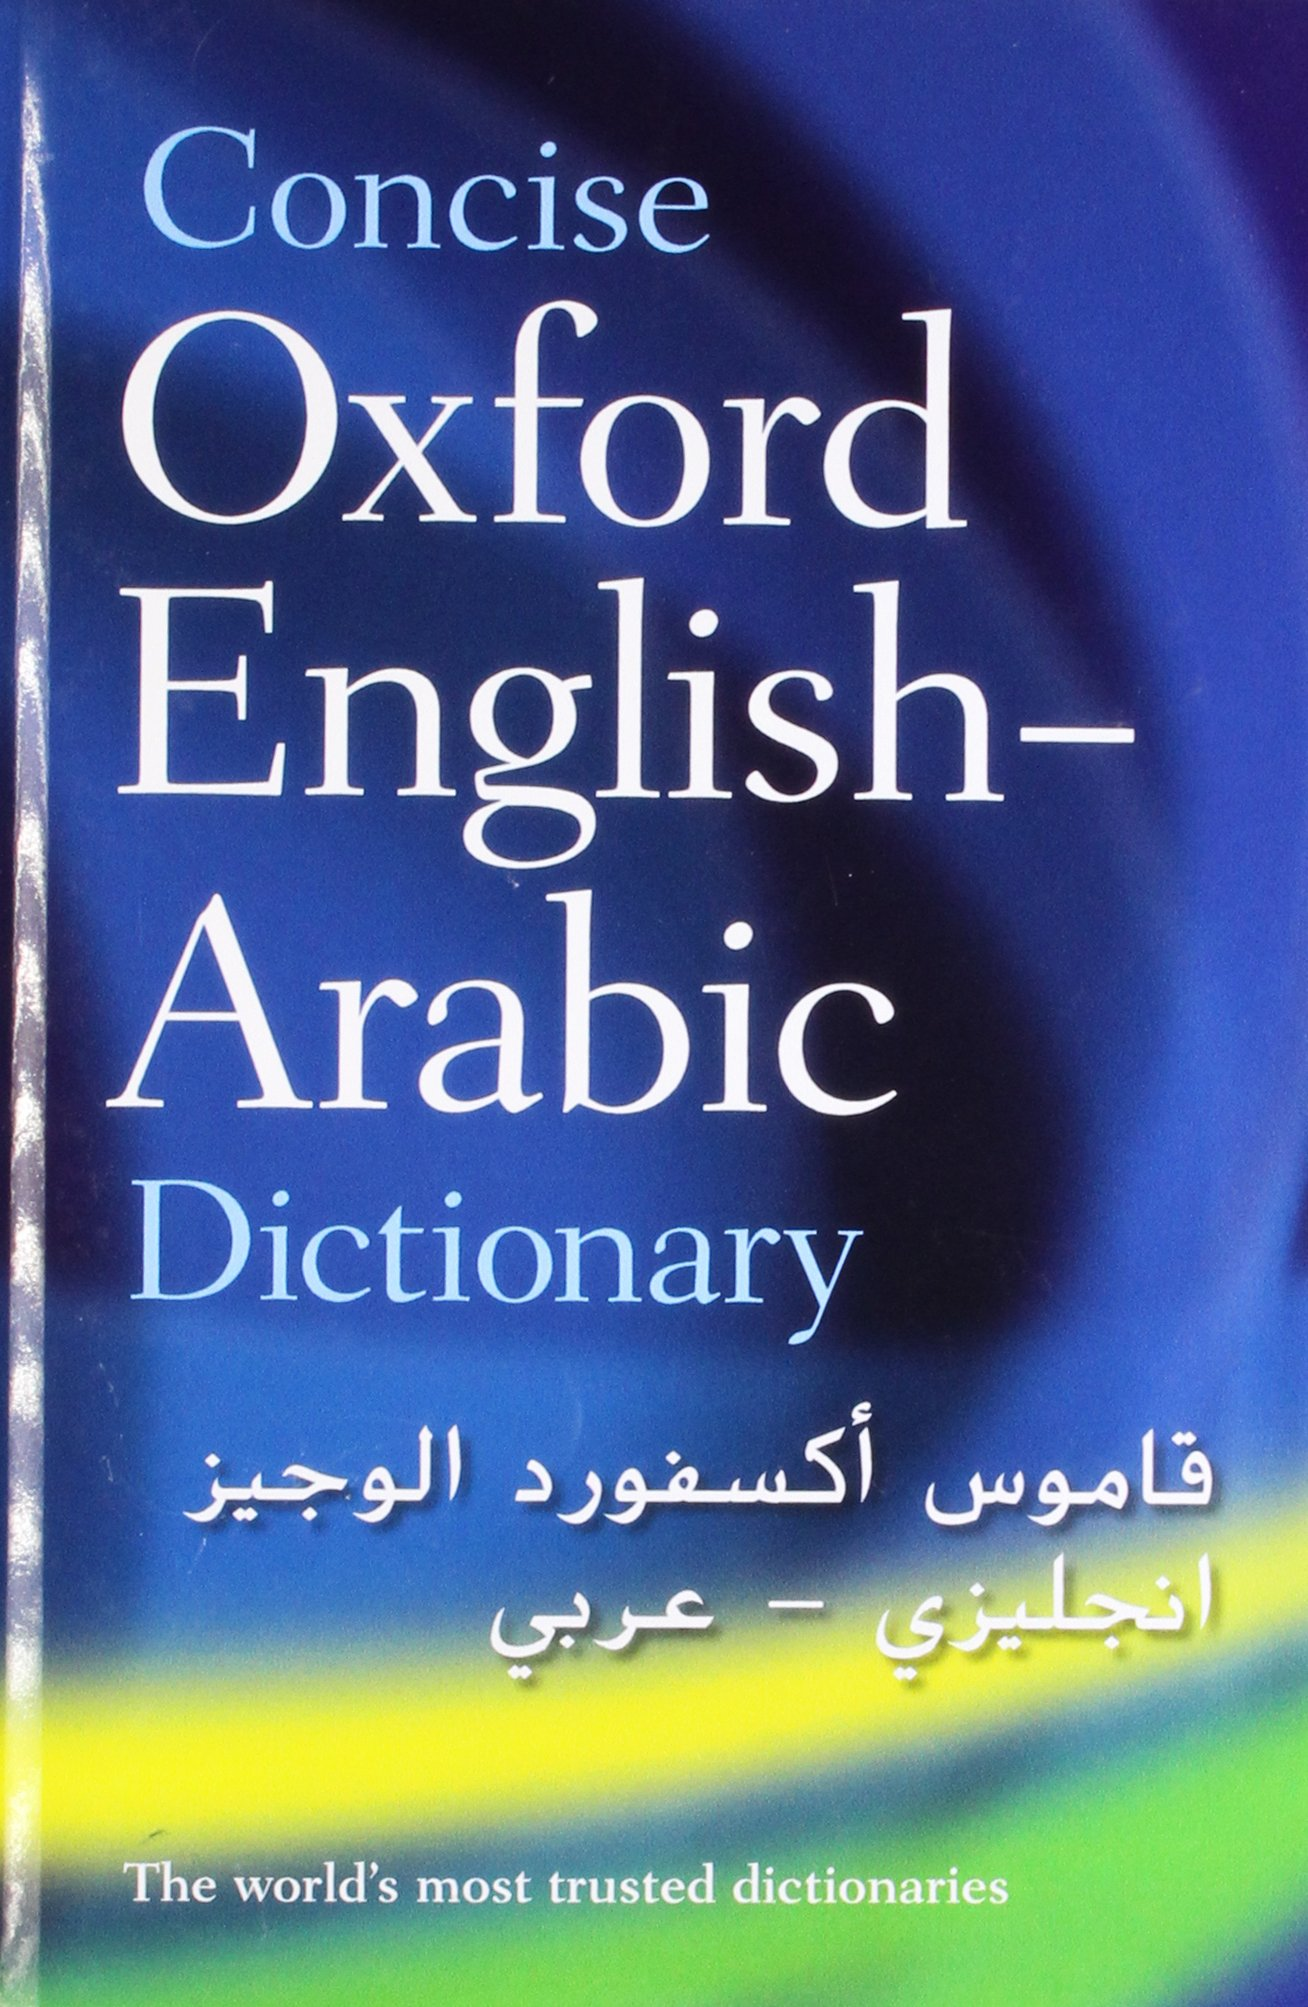 Concise oxford english arabic dictionary of current usage amazon co uk n s doniach s khulusi n shamaa w k davin 9780198643210 books